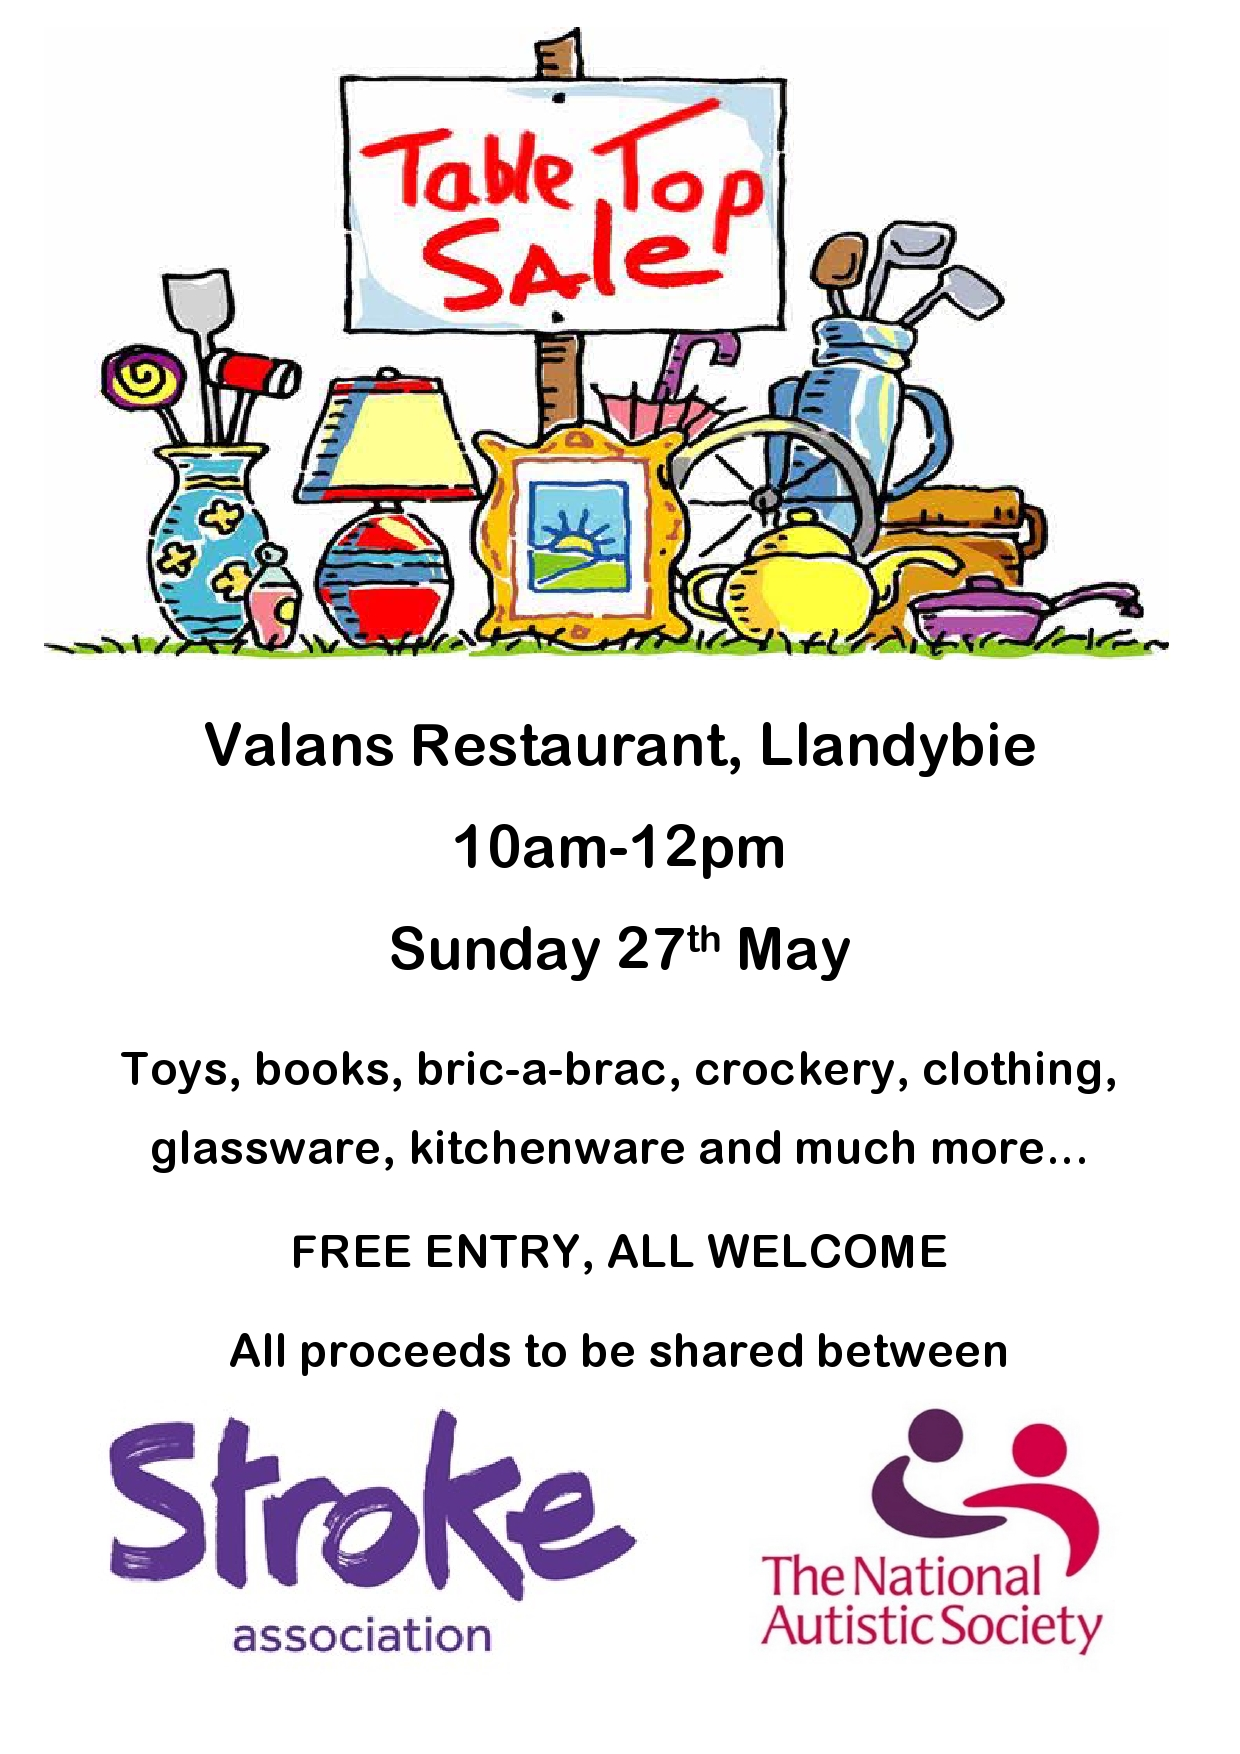 Charity Table Top Sale